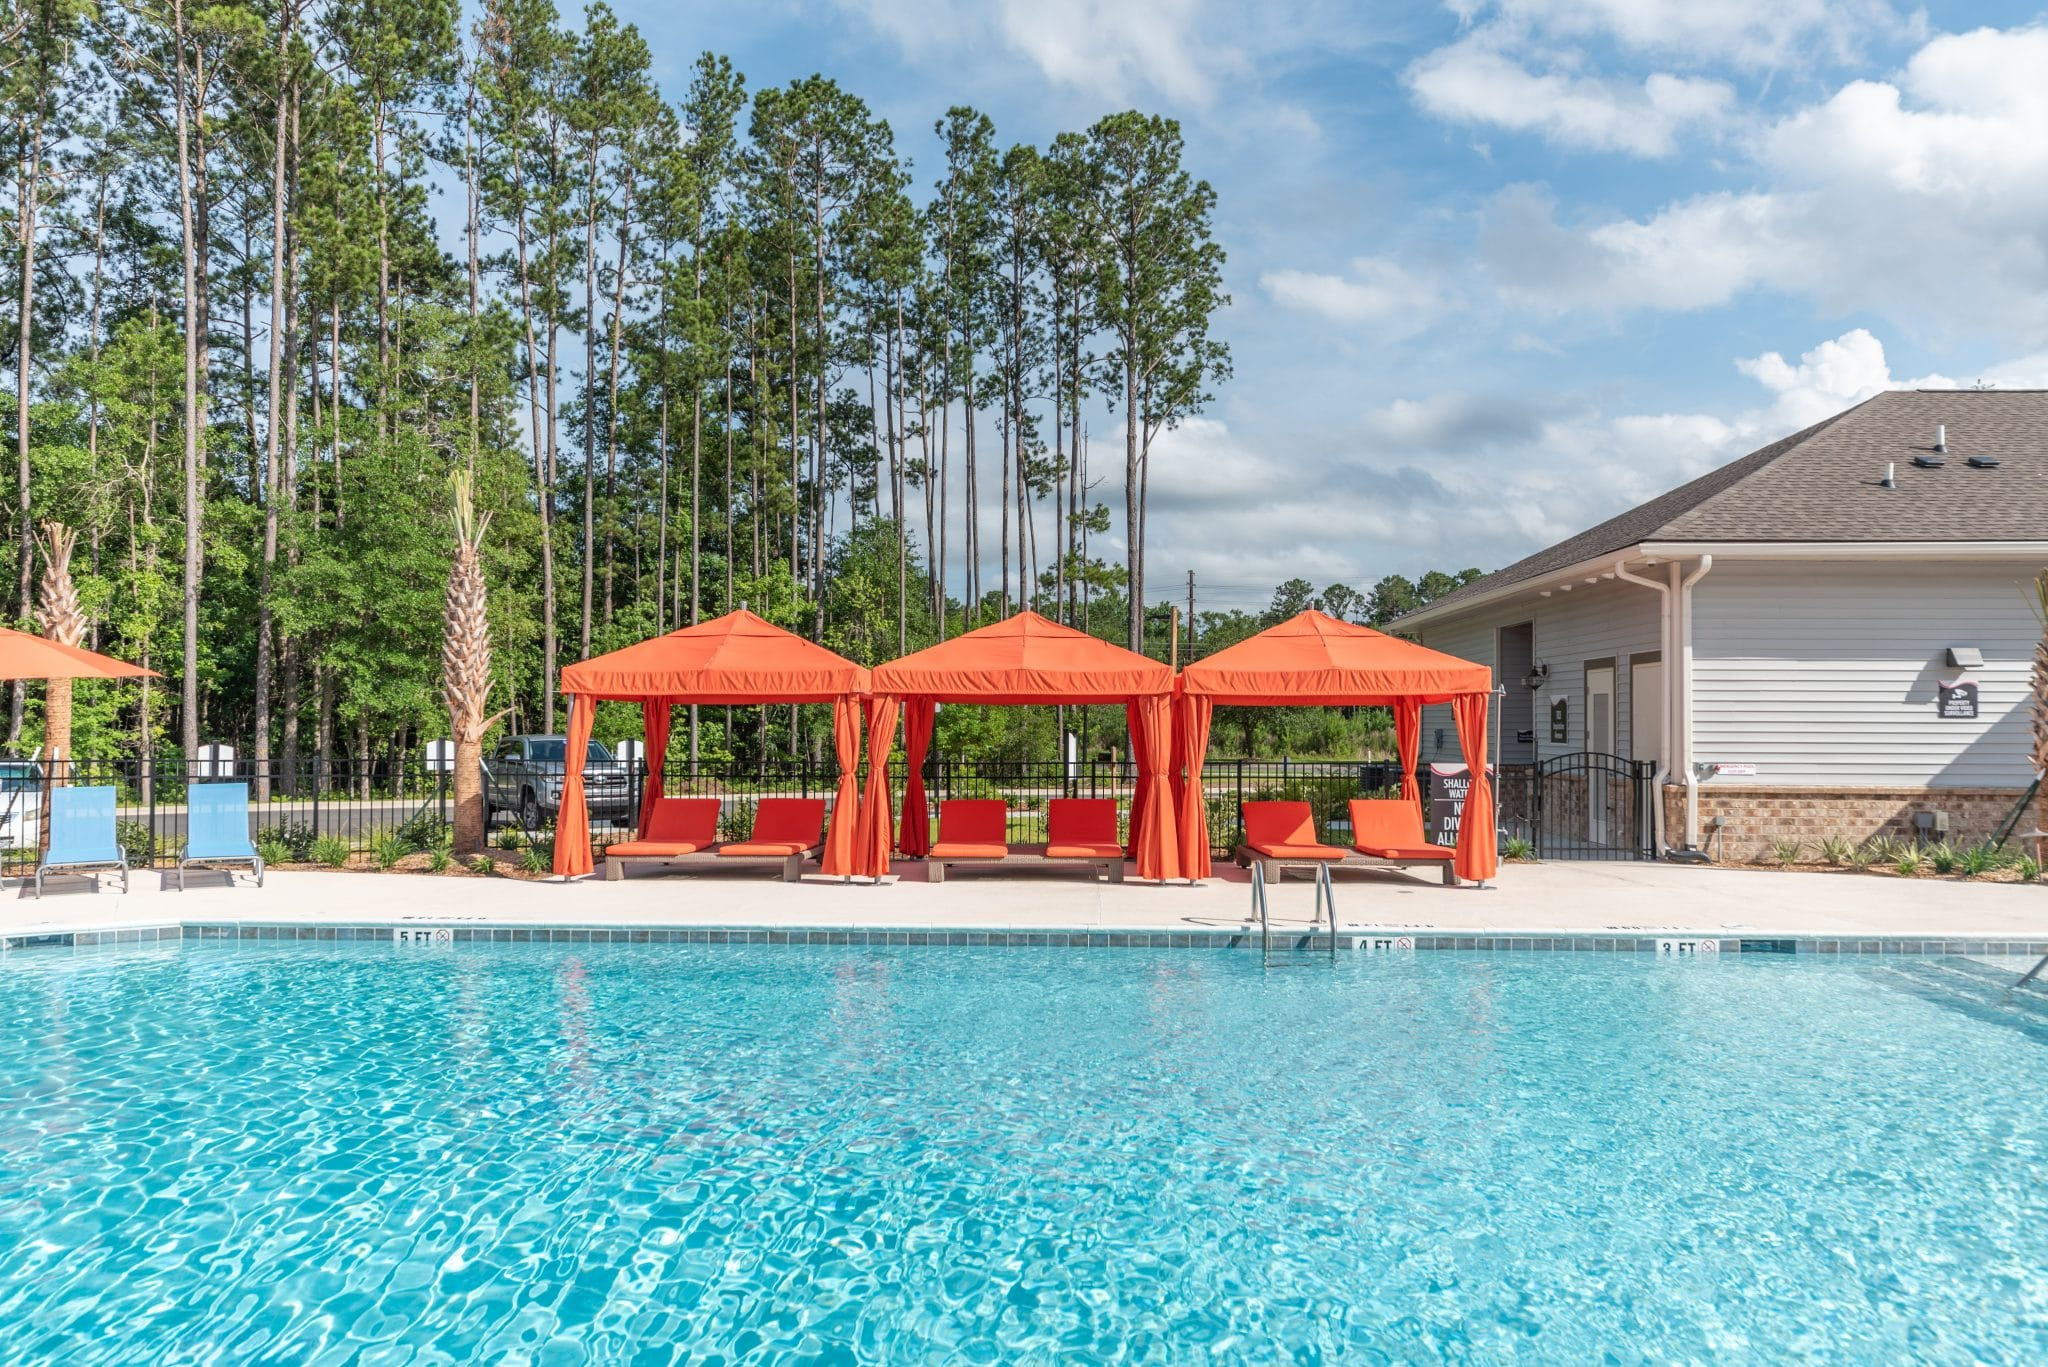 Apartments in Bluffton